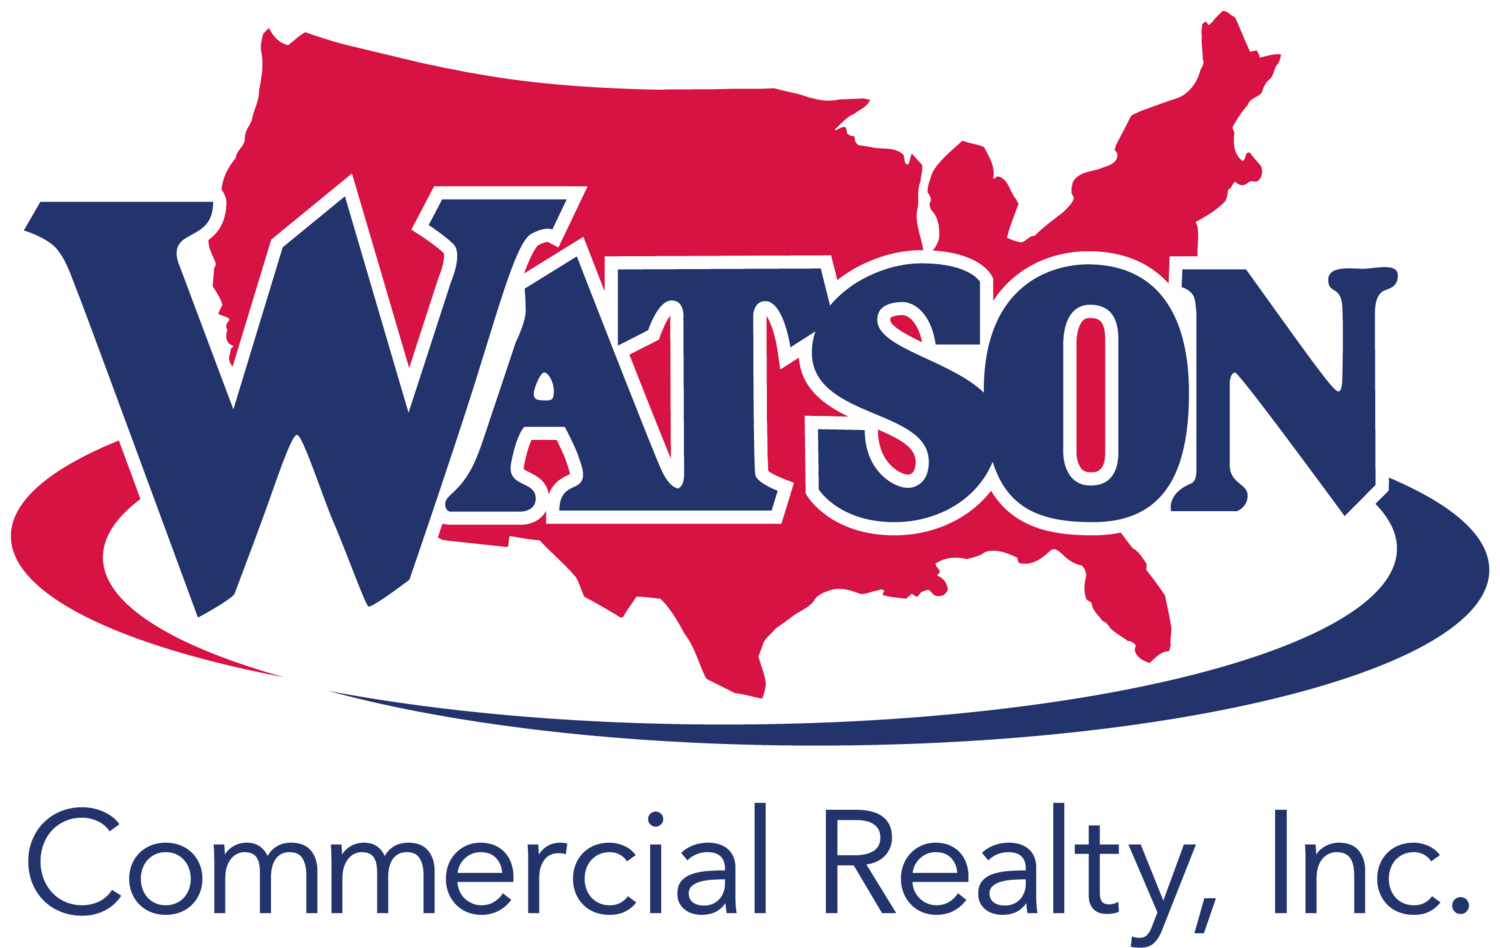 Watson Commercial Realty